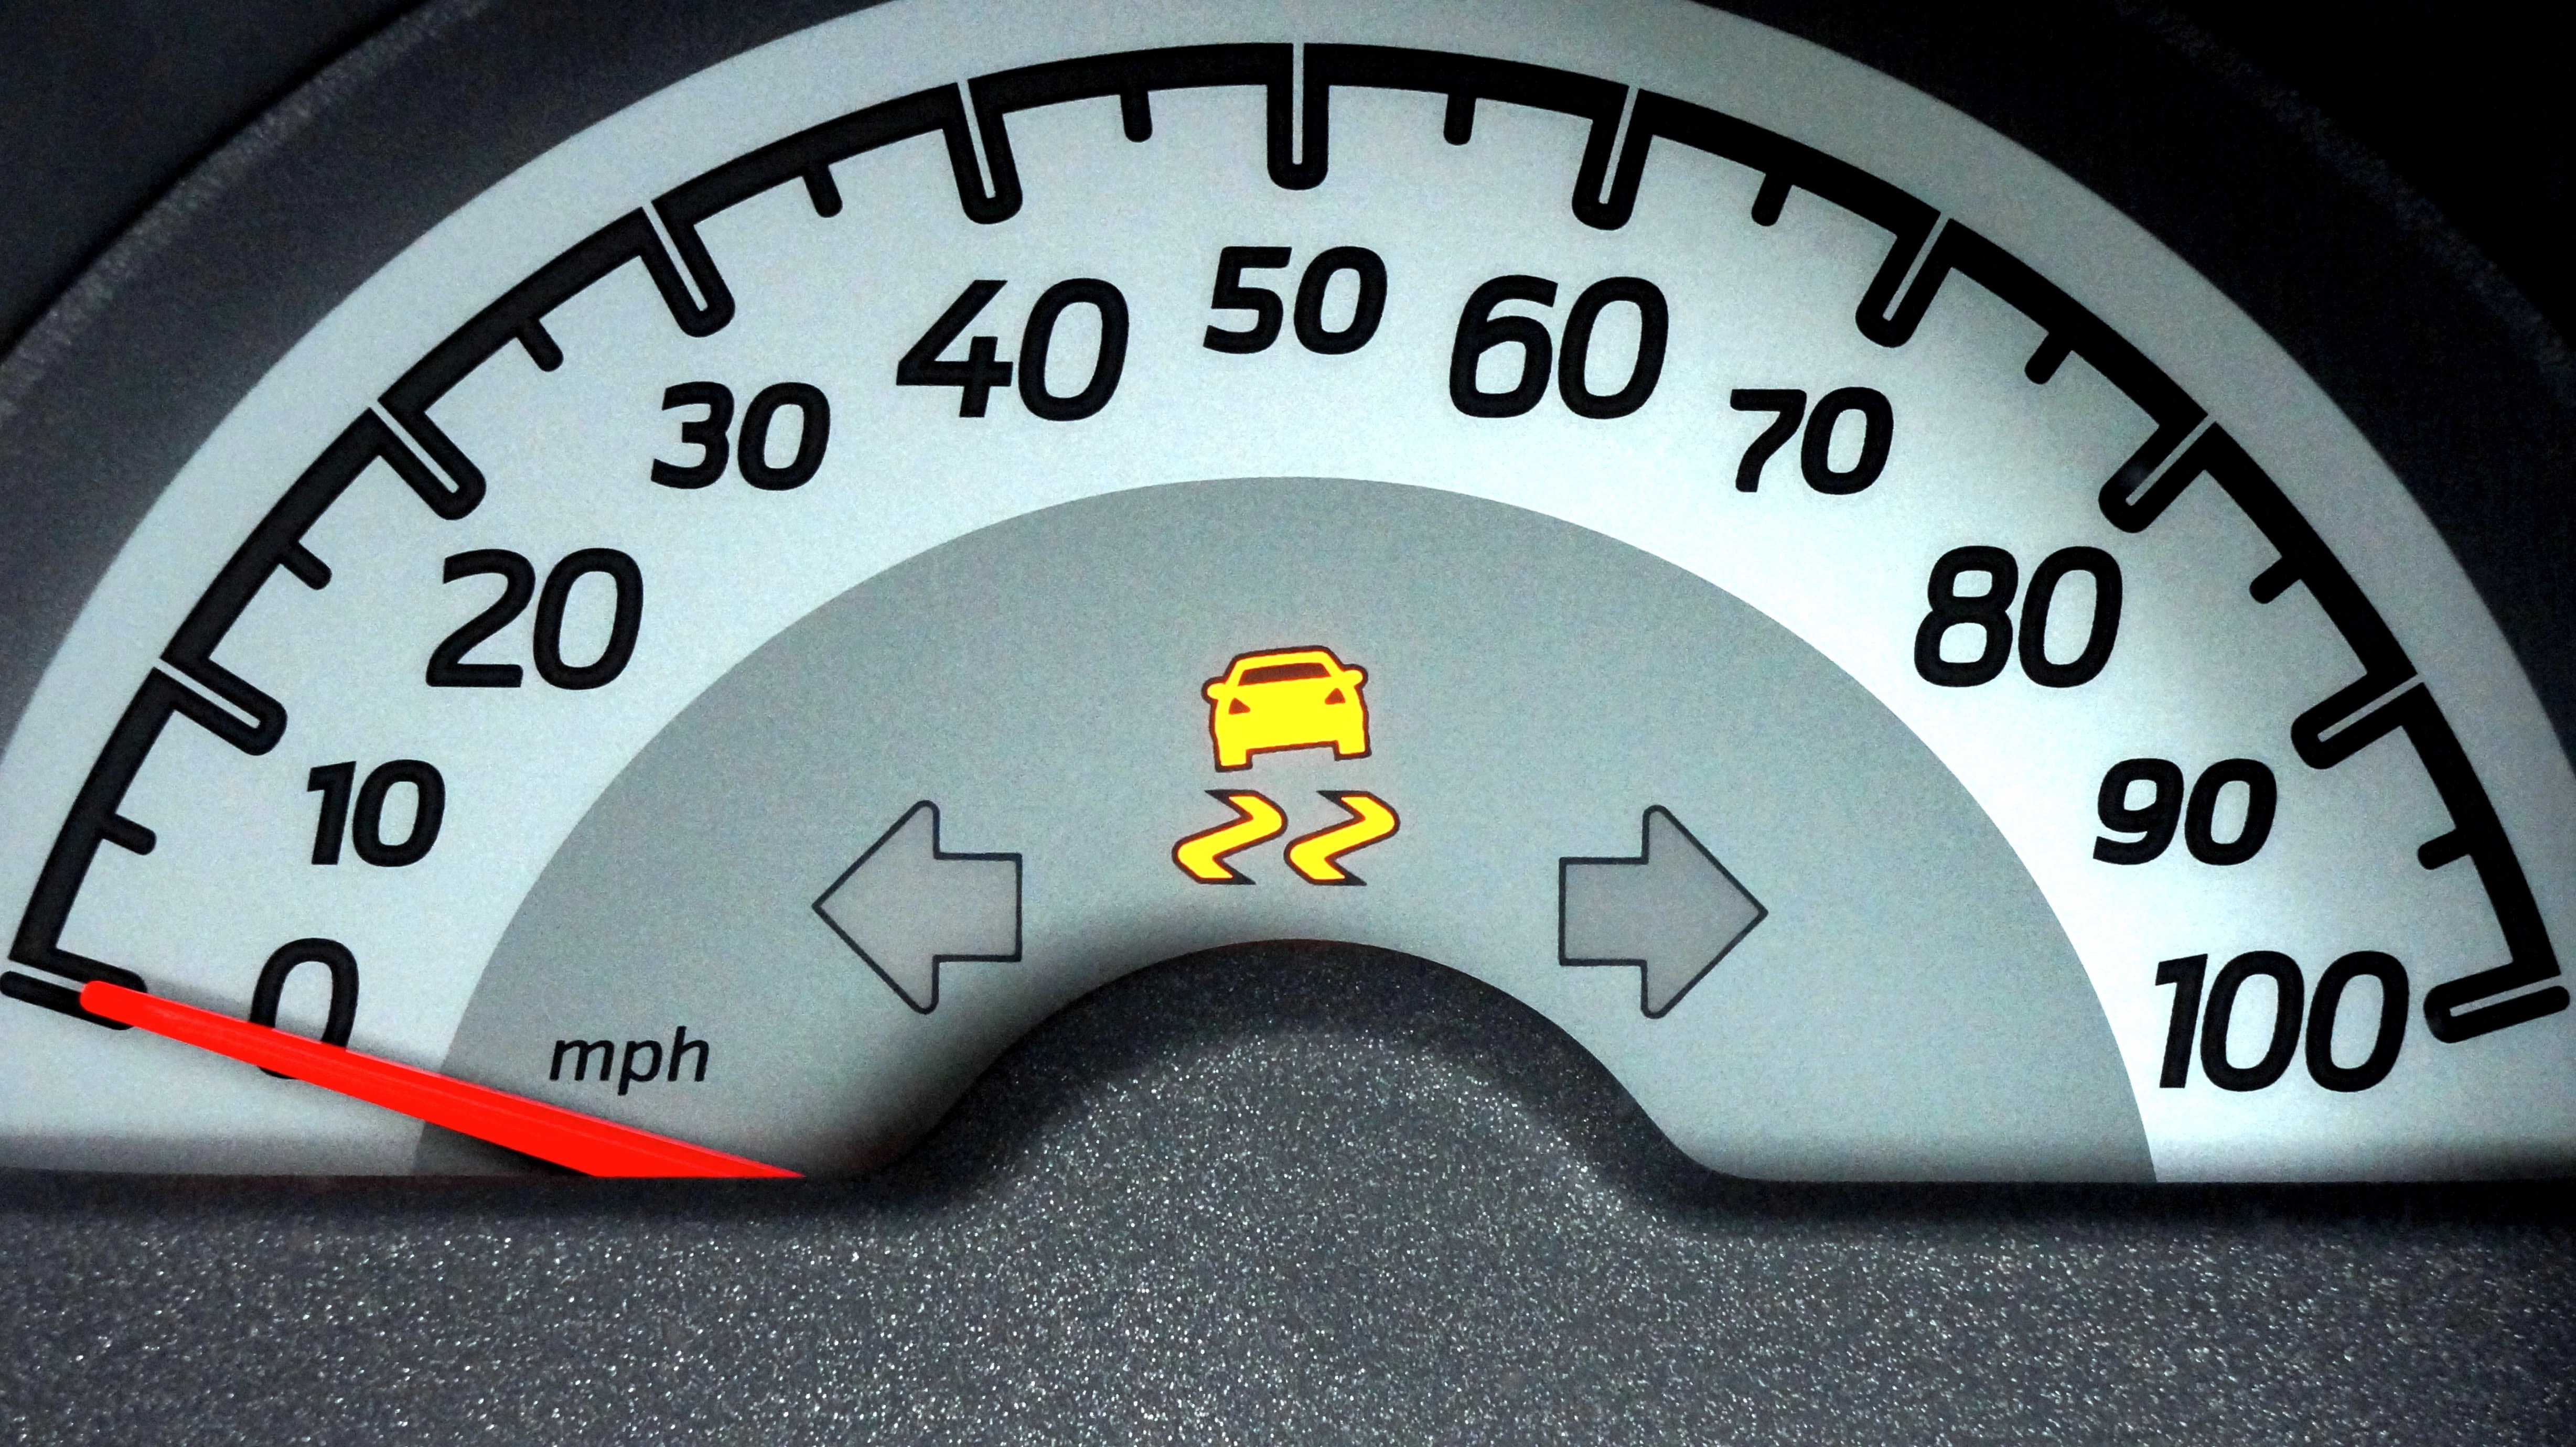 Free photo: White and Grey Car Speedometer Gauge on 0 Miles Per Hour ...